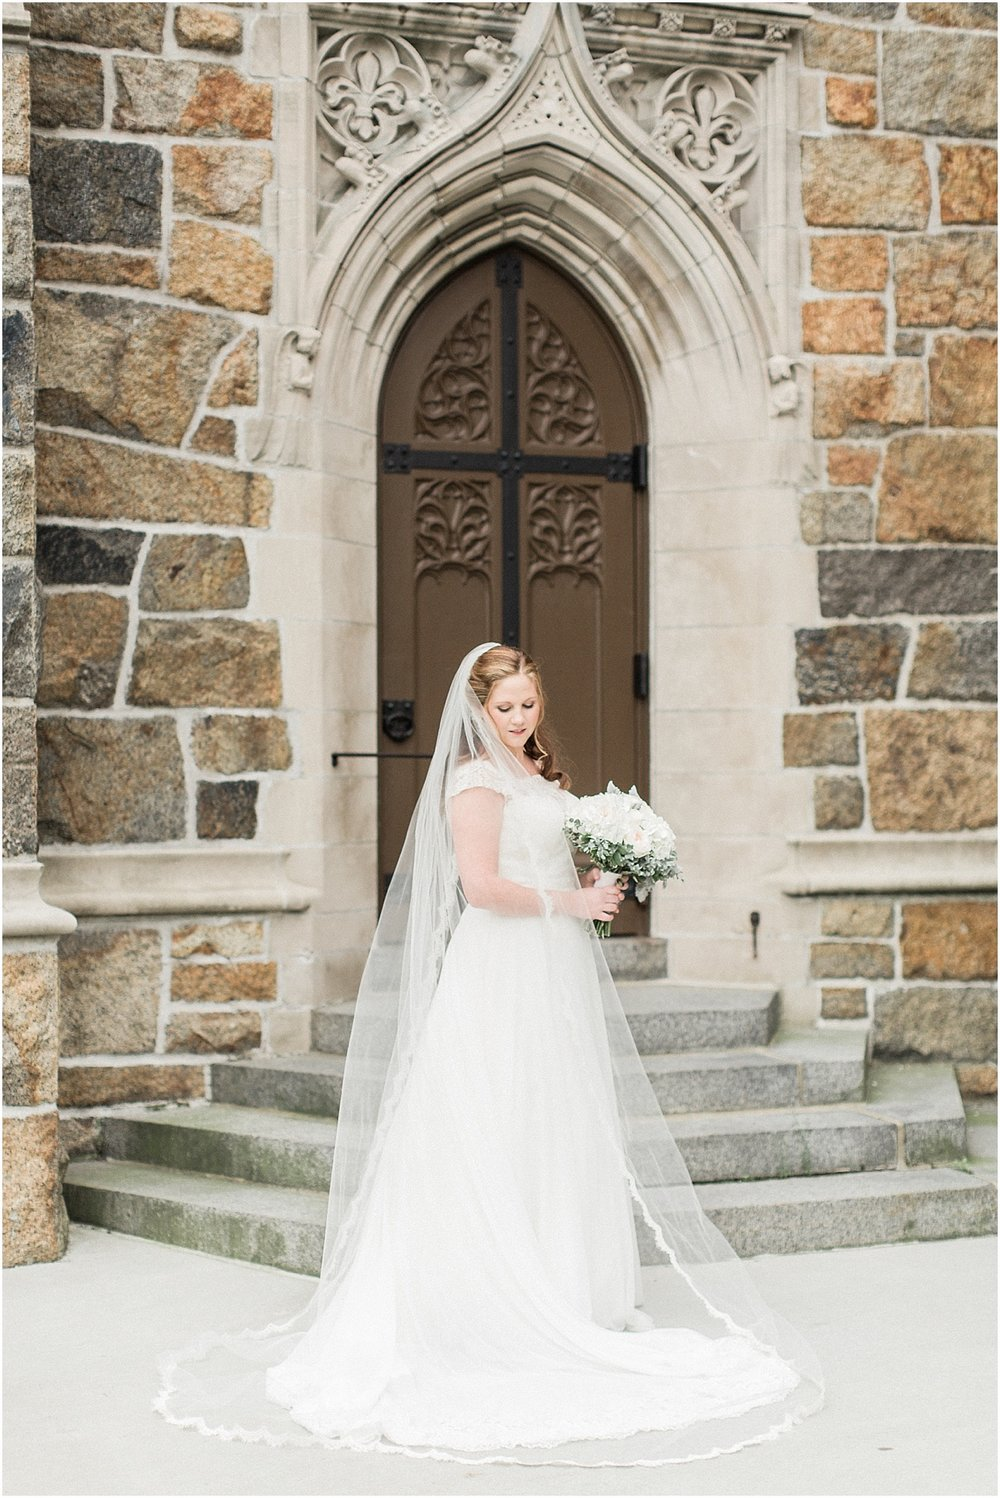 jaclyn_adam_st_ann_brendans_dorchester_southie_castle_bride_groom_venezia_waterfront__cape_cod_boston_wedding_photographer_meredith_jane_photography_photo_0907.jpg